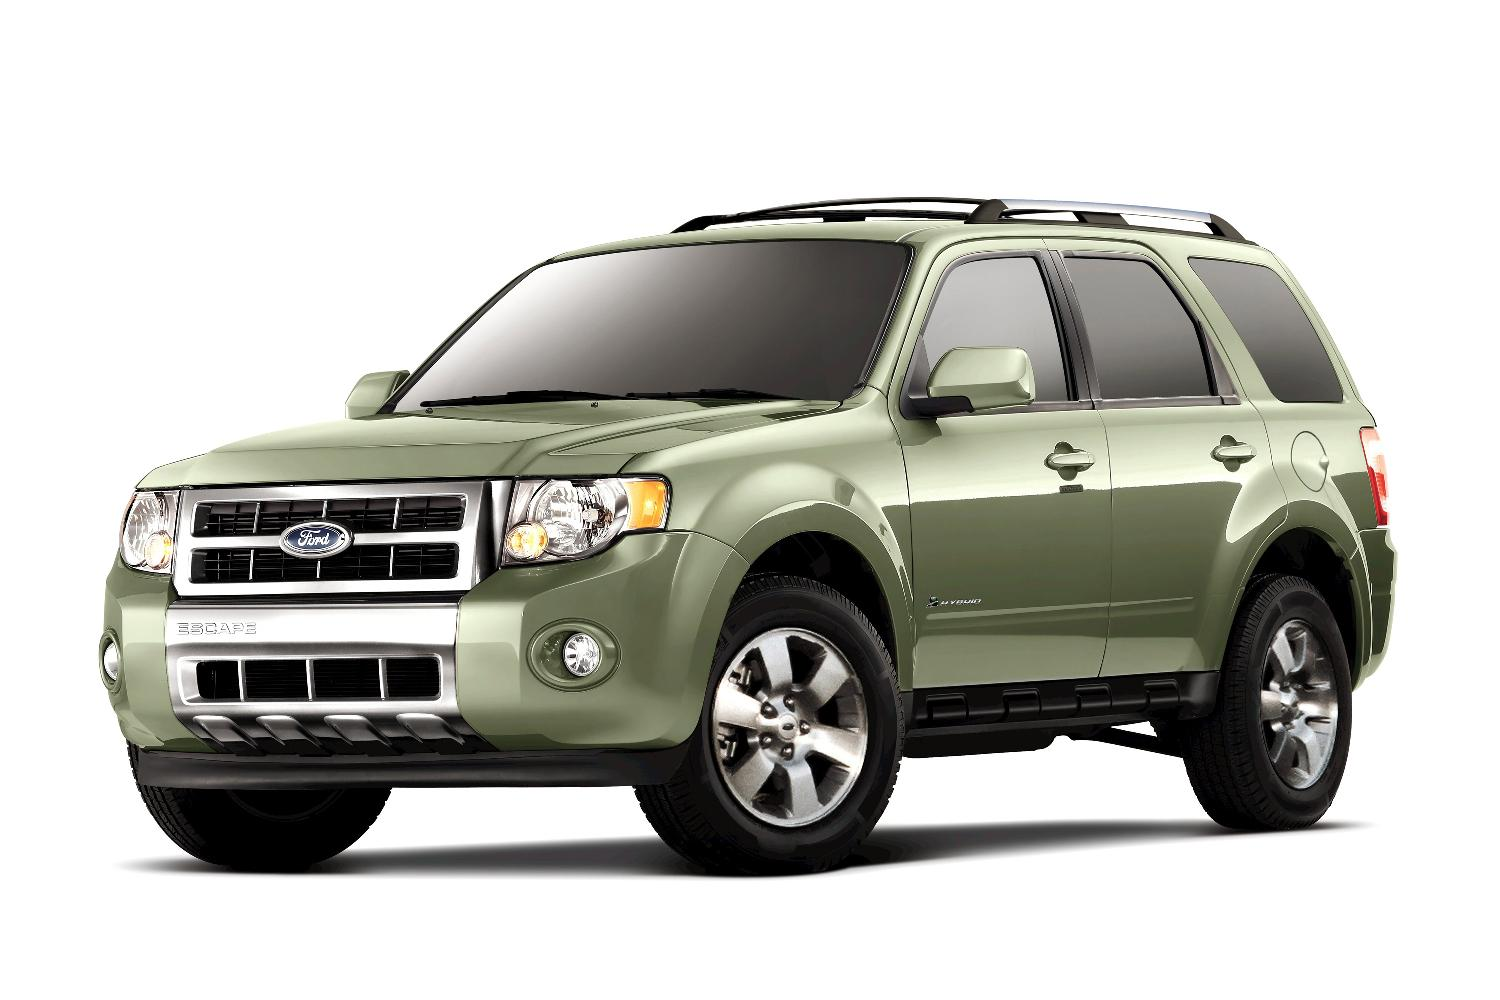 Ford Hybrid Suv >> 2010 Ford Escape Hybrid Review Ratings Specs Prices And Photos